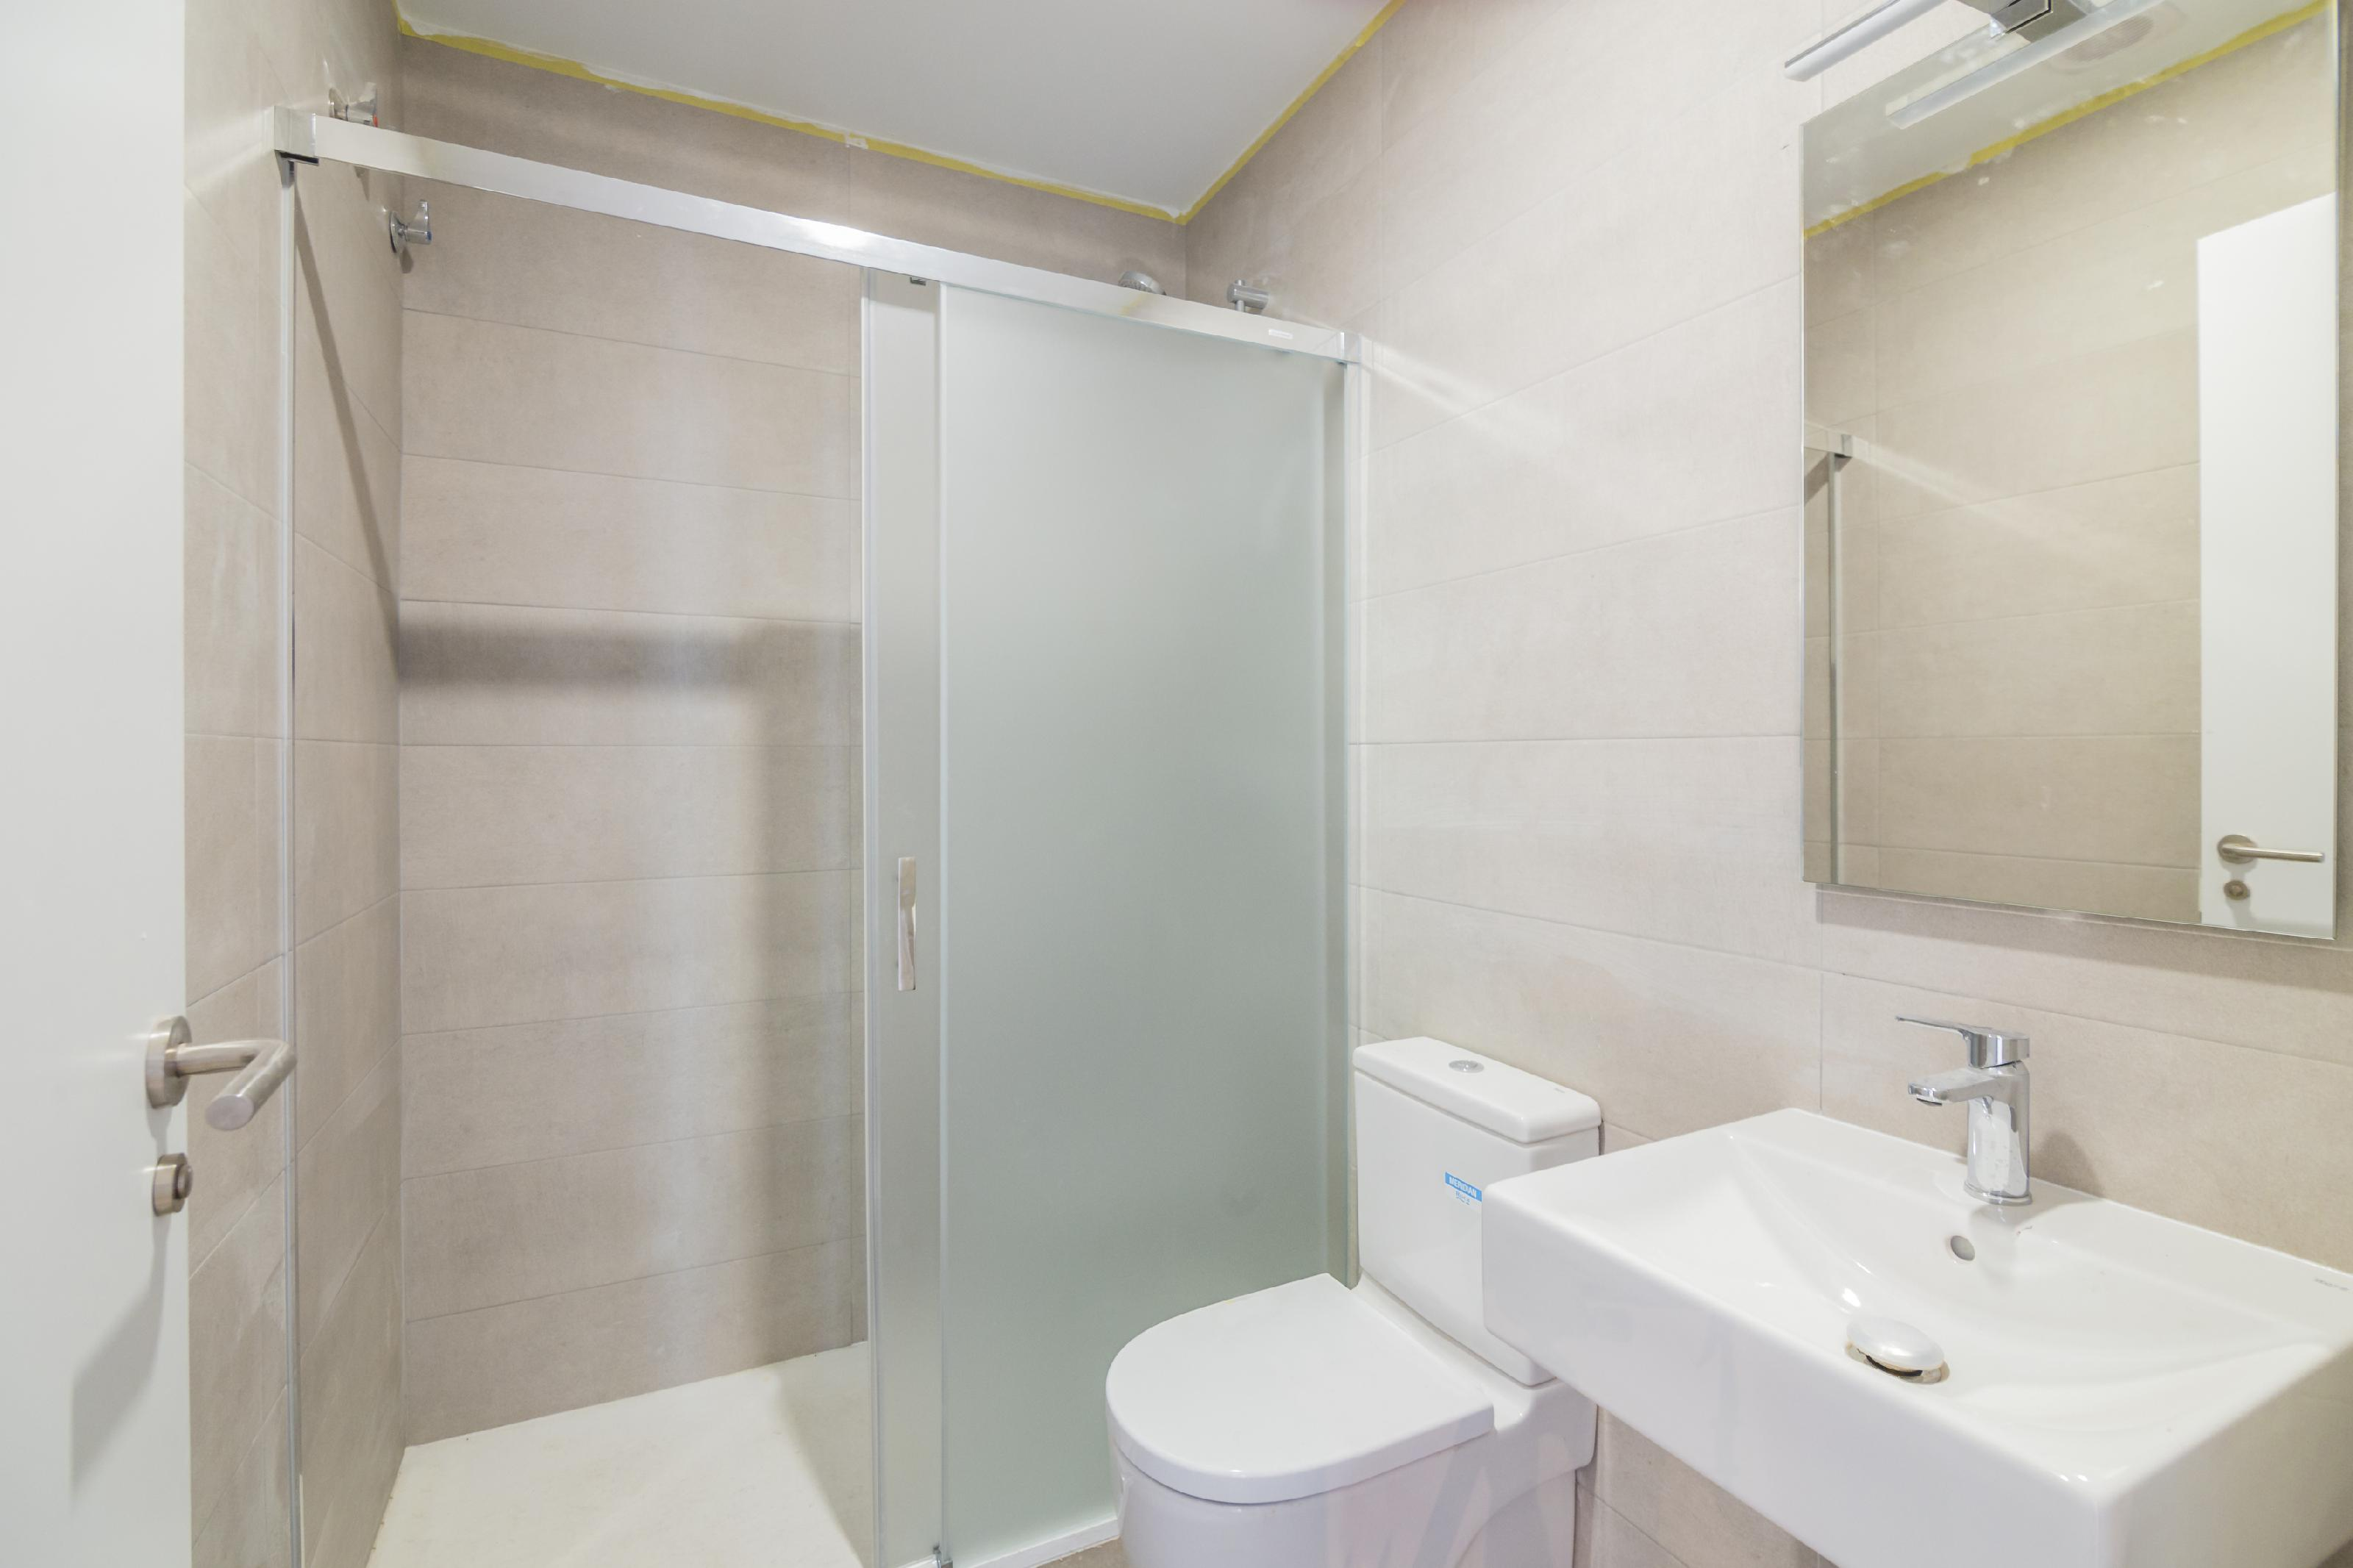 220652 Apartment for sale in Sarrià-Sant Gervasi, Sant Gervasi-Galvany 3